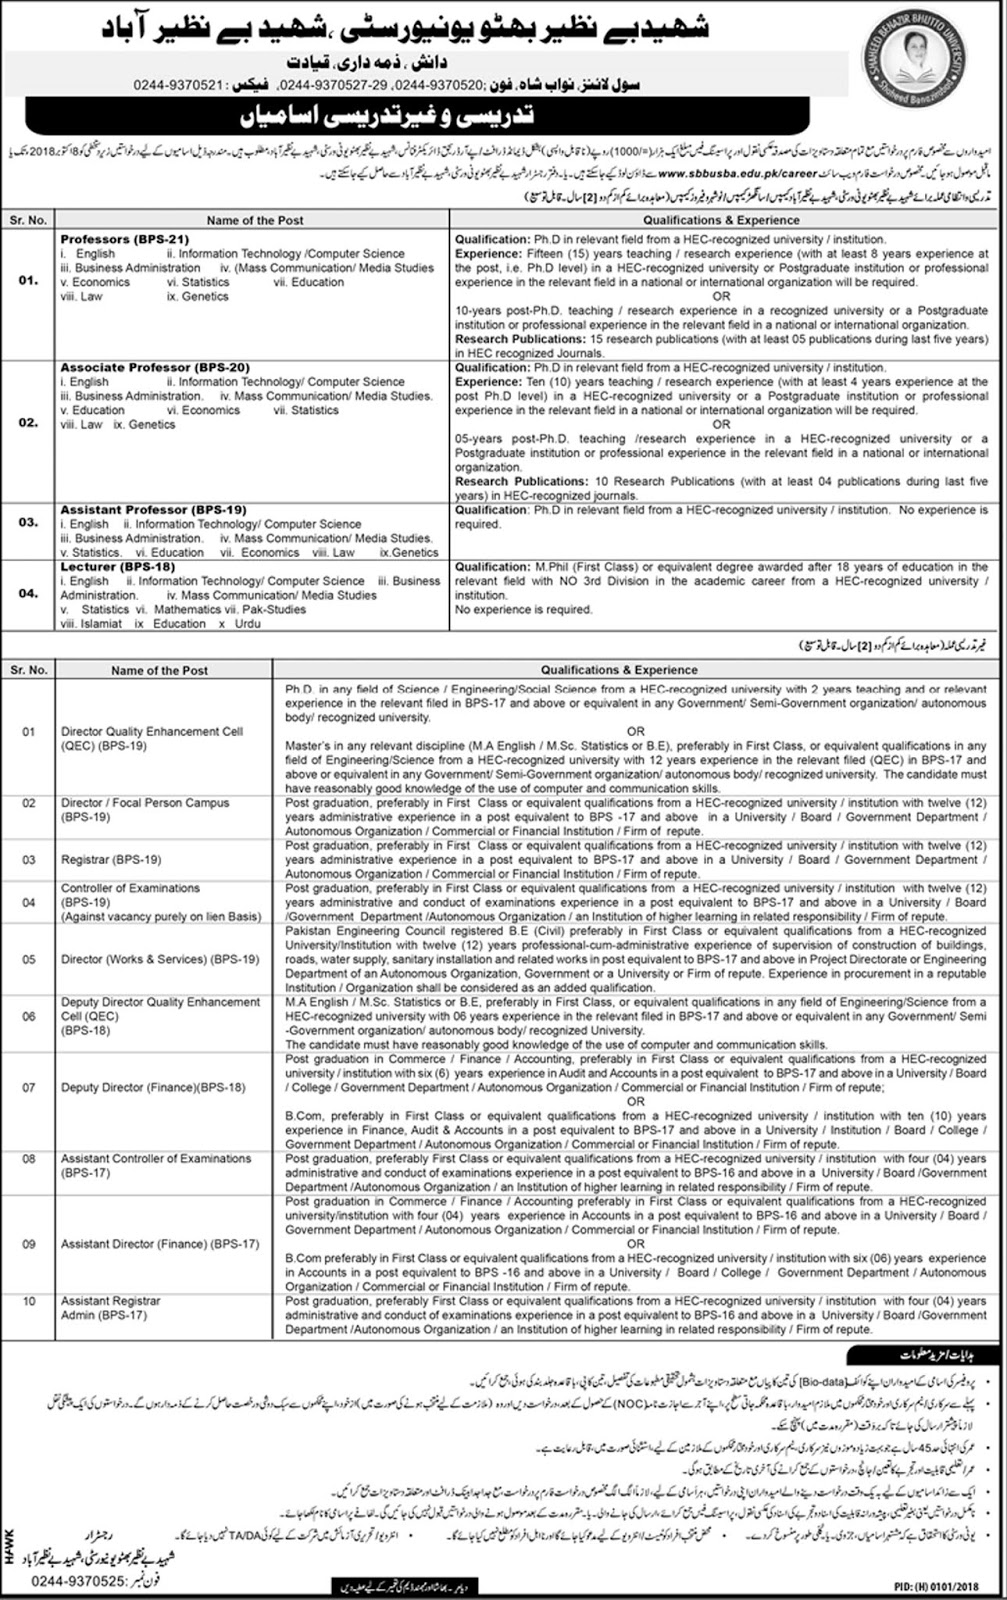 Latest Vacancies Announced in Shaheed Benazir Bhutto University 16 September 2018